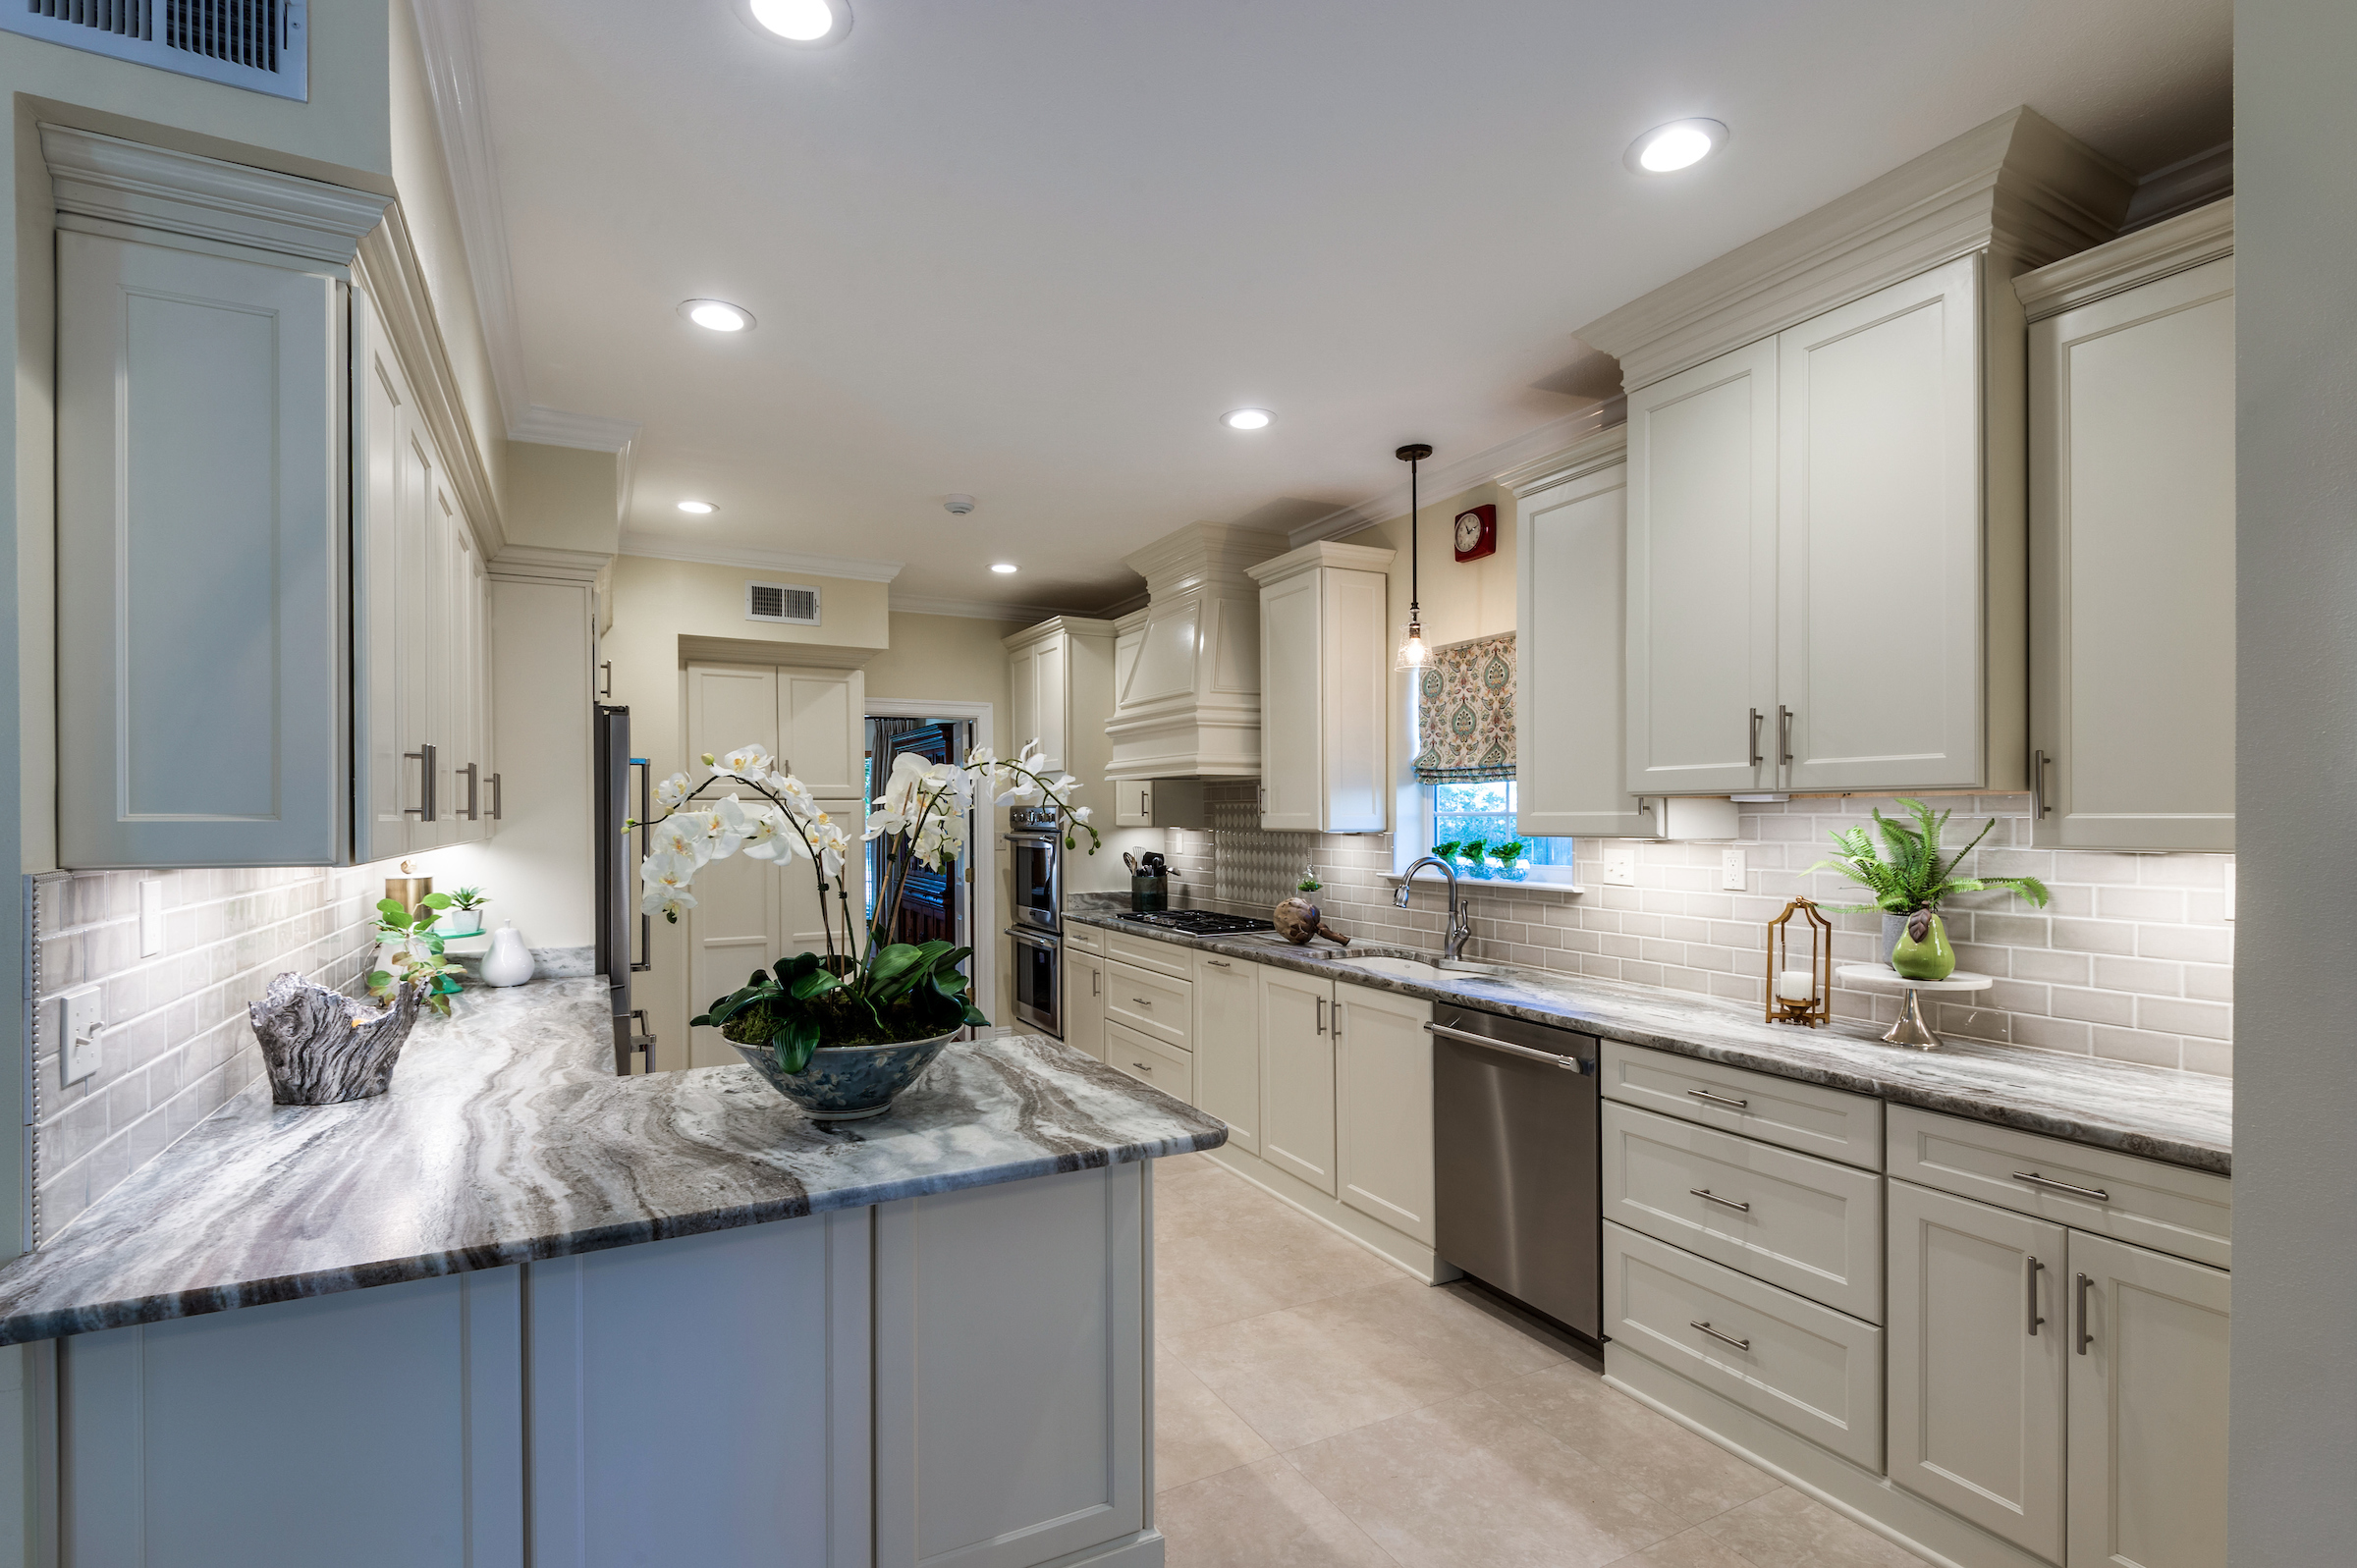 kitchen countertops metairie traditional interior design khb interiors